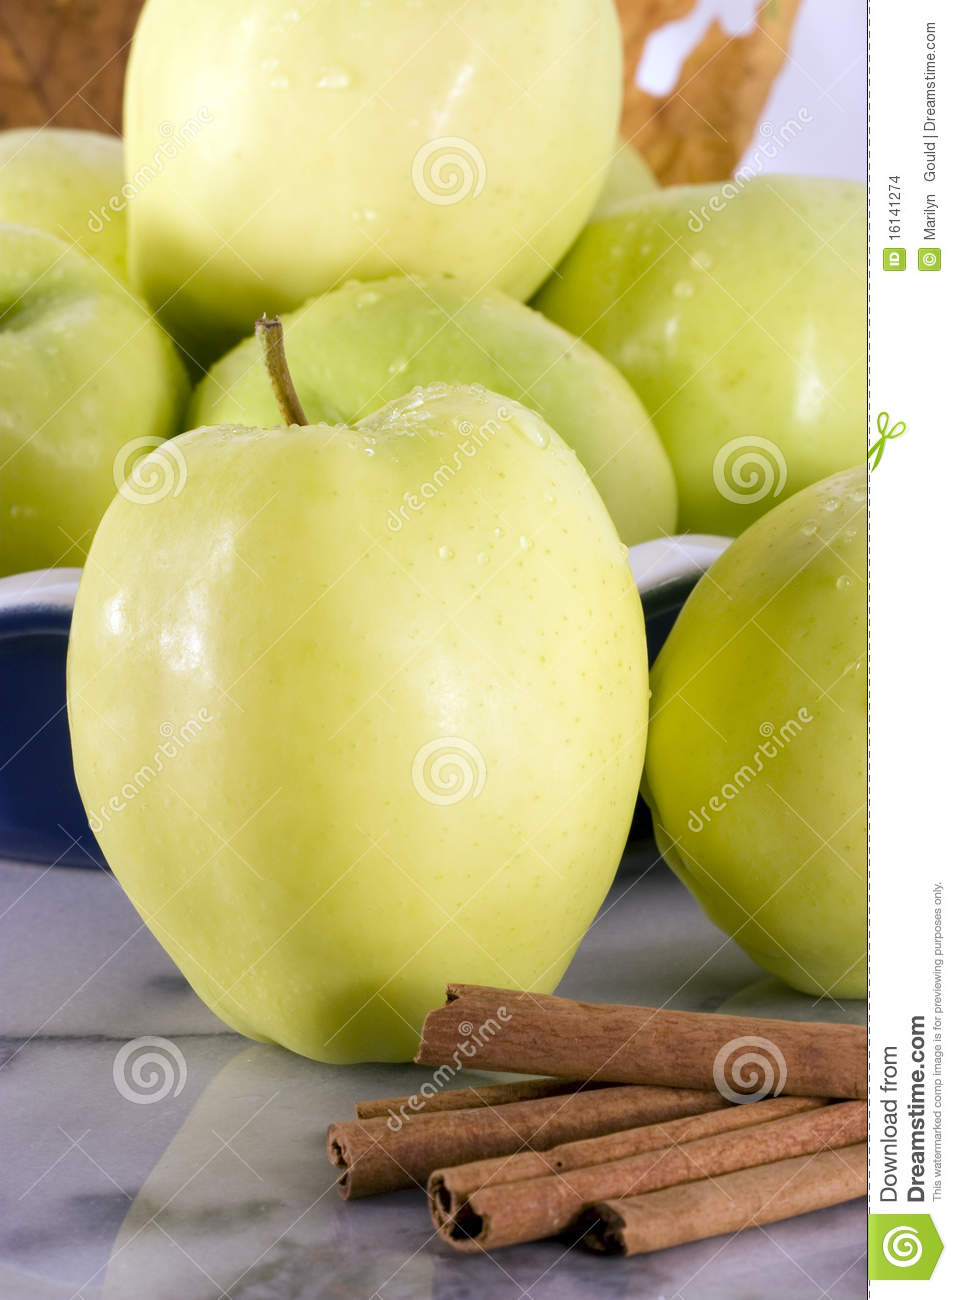 Green Apple Varieties http://www.dreamstime.com/stock-images-green-apple-ginger-gold-variety-image16141274